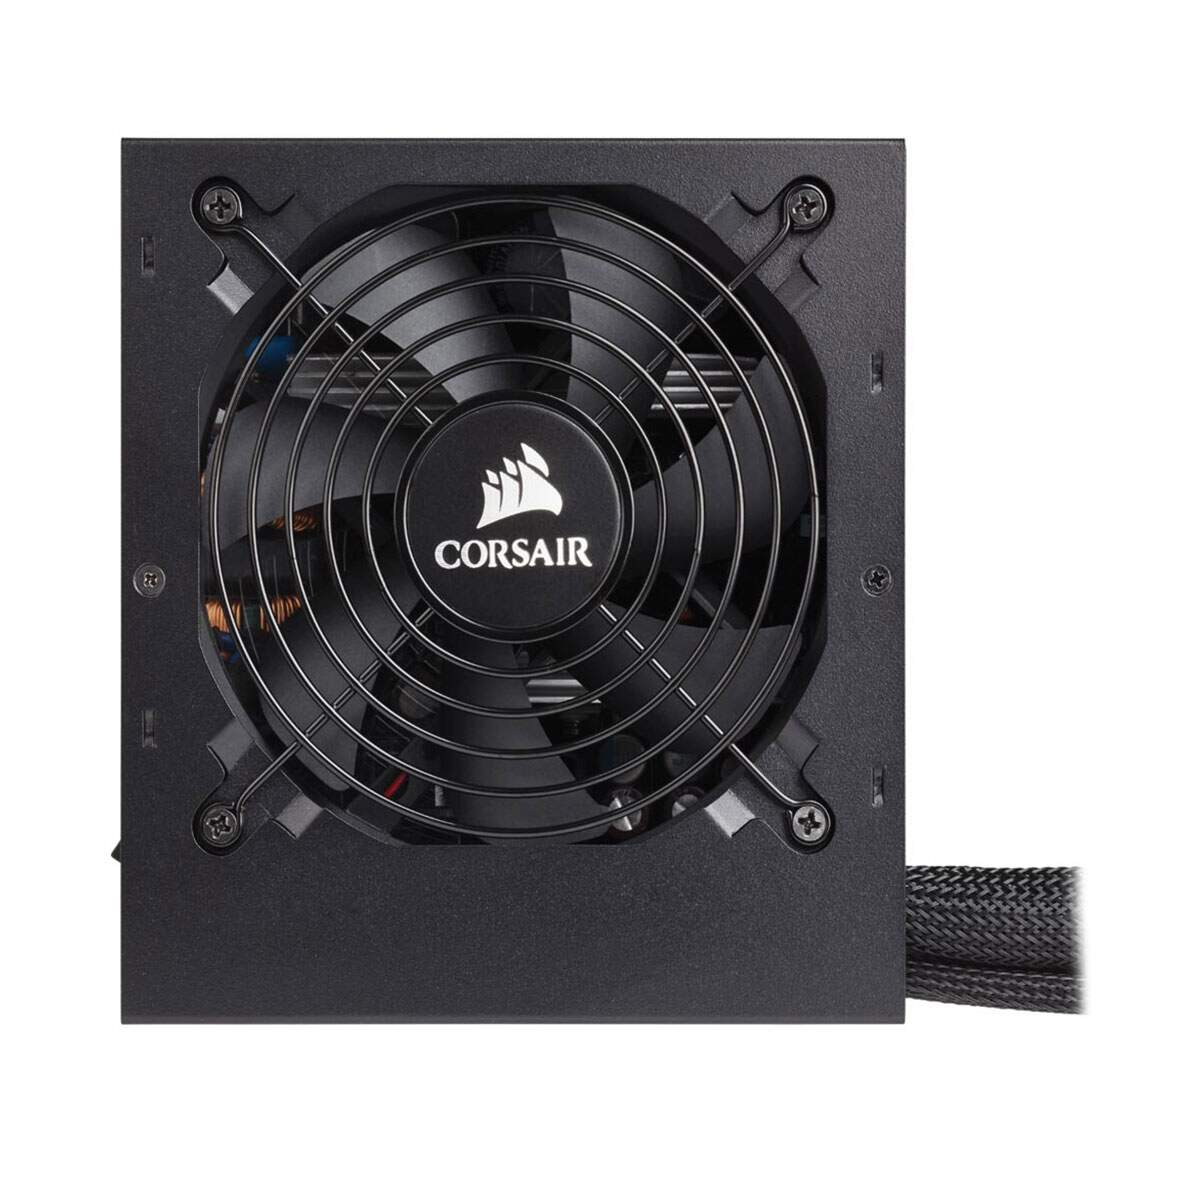 Fonte Corsair 750W 80 Plus Bronze CX750 - CP-9020123